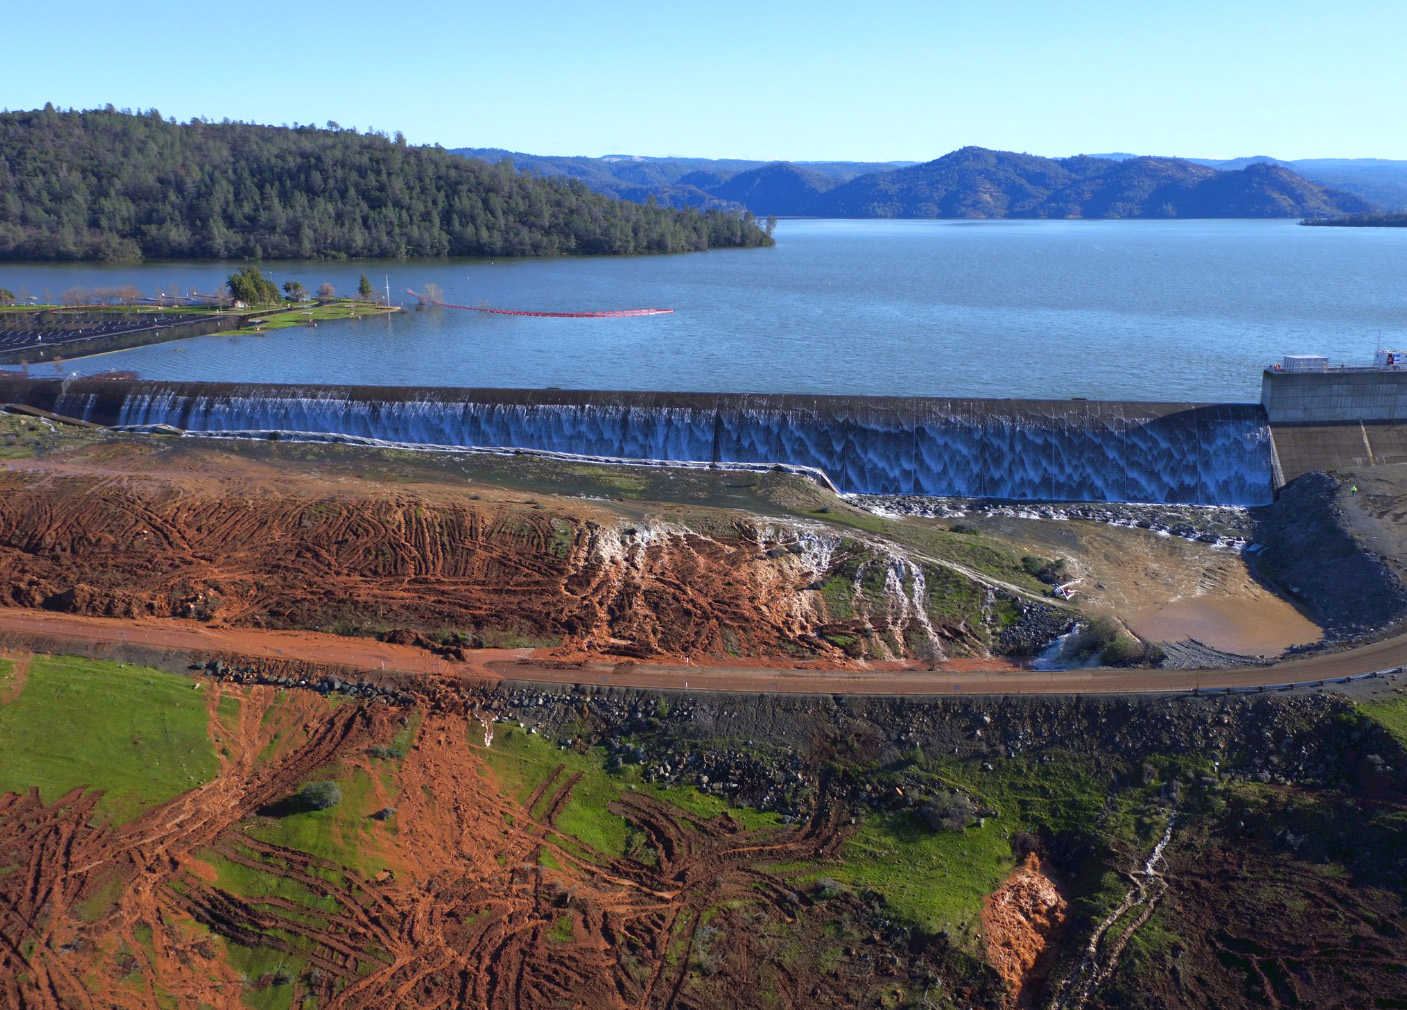 Breaking News: The Oroville Dam Has Stopped Its Overflow